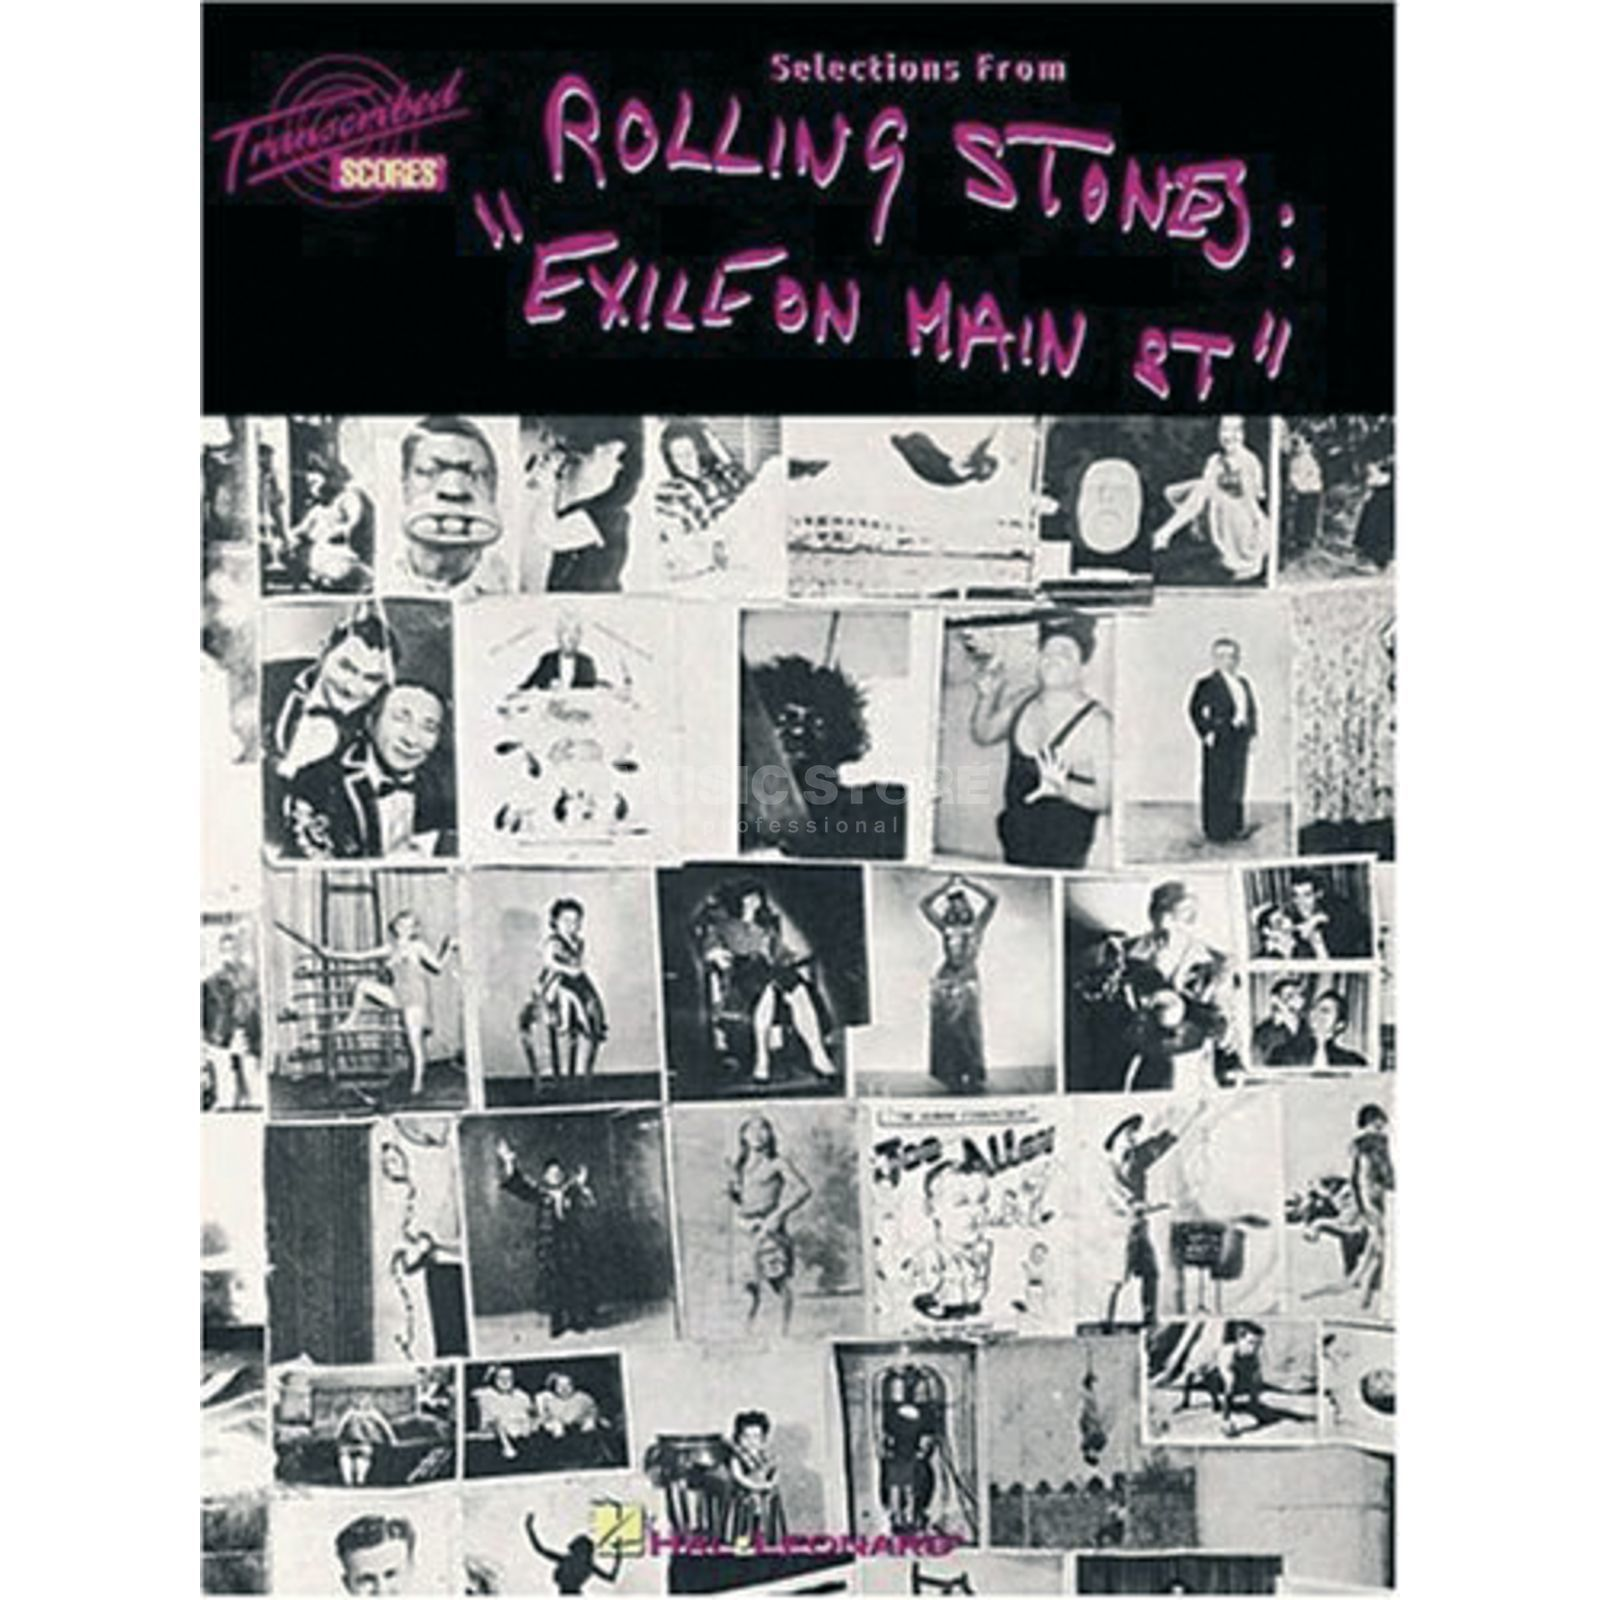 Hal Leonard The Rolling Stones: Exile On Main Street Produktbild